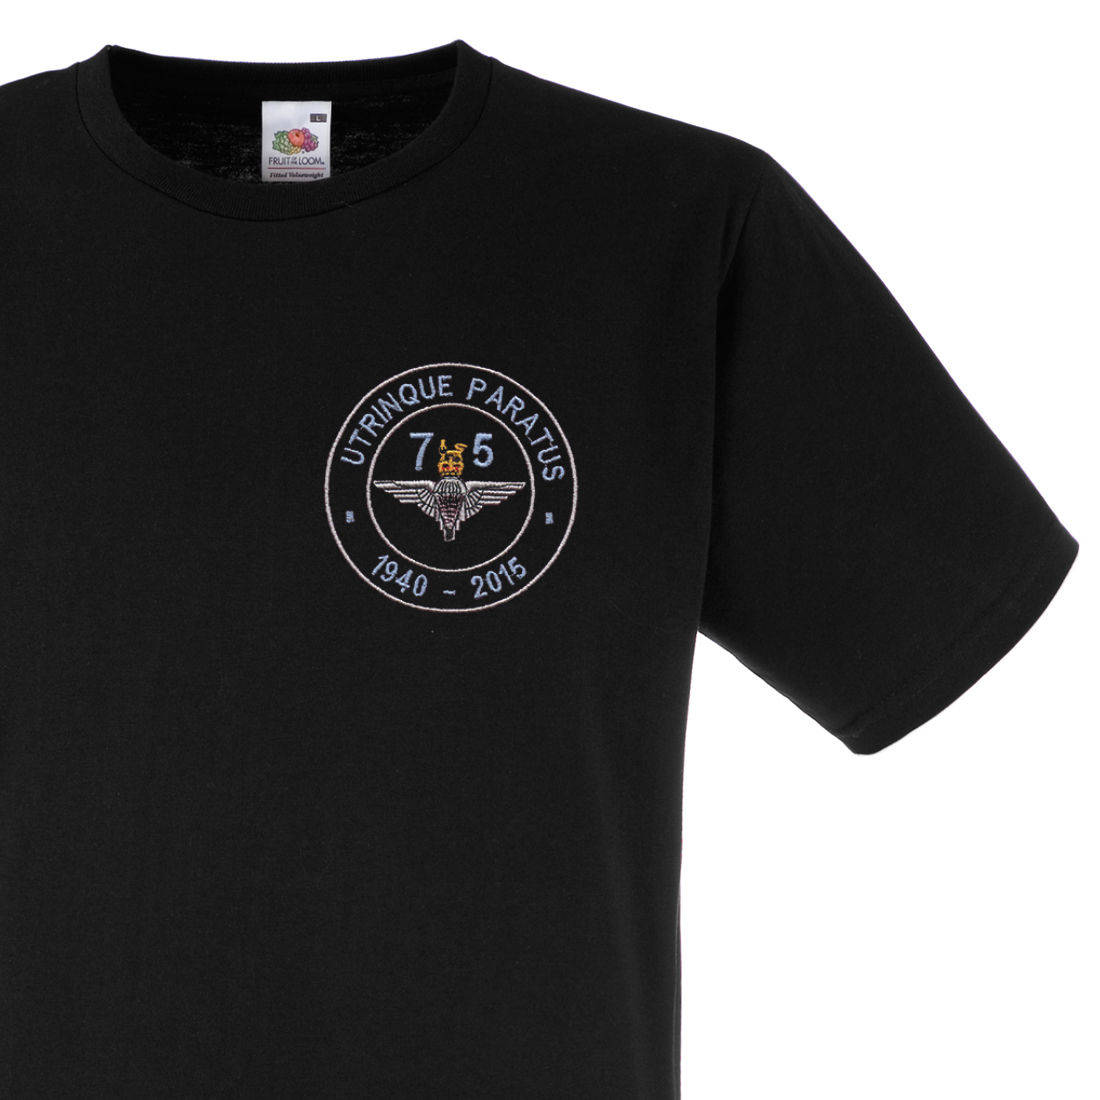 Fitted T-Shirt - Black - Airborne 75 (Para)